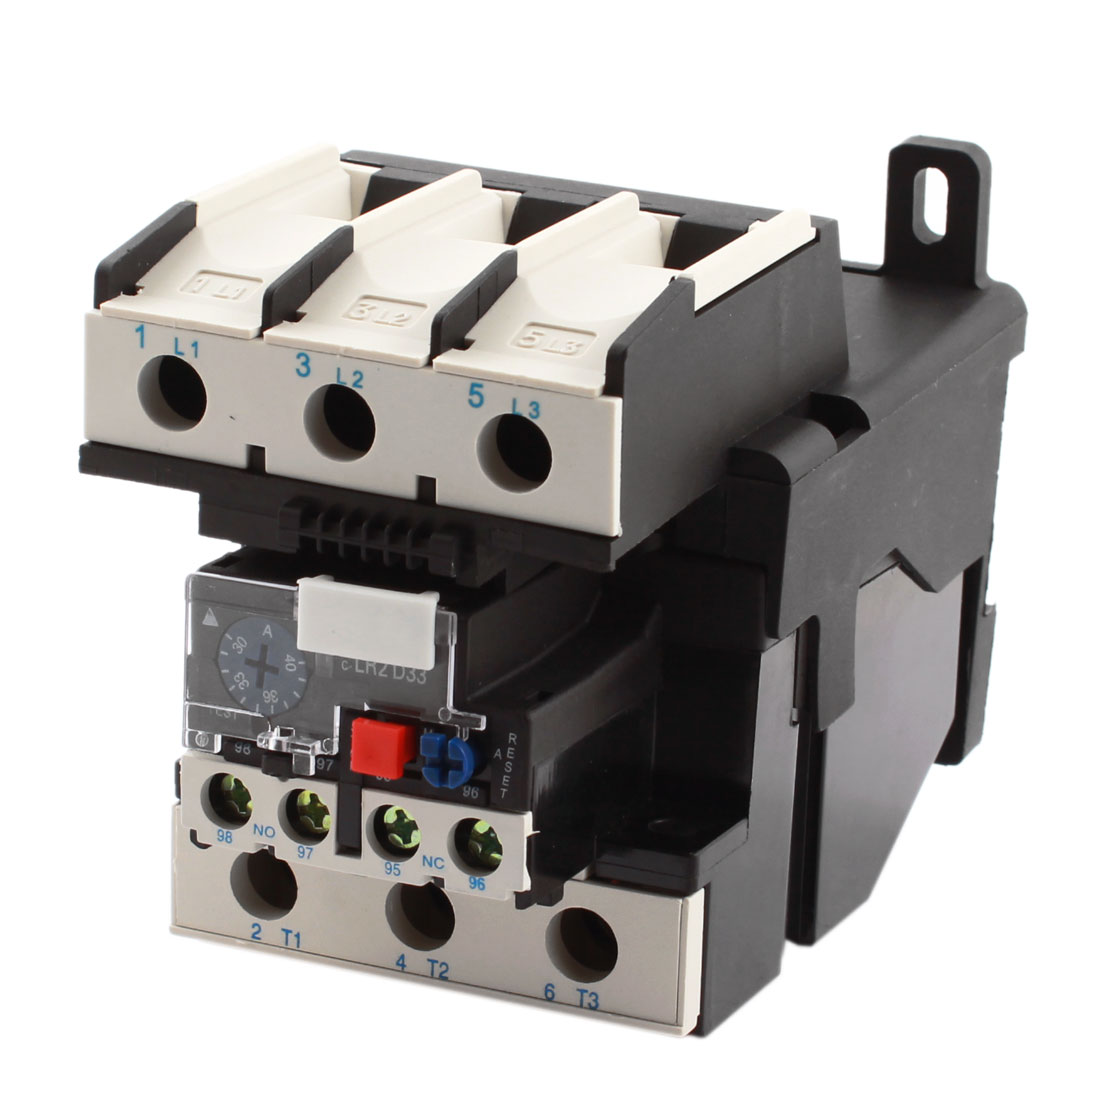 JR28-33 1NO 1NC 3 Phases 30-40A 35mm DIN Rail + 2 Mounting Holes Adjustable Motor Protector Electric Thermal Overload Relay